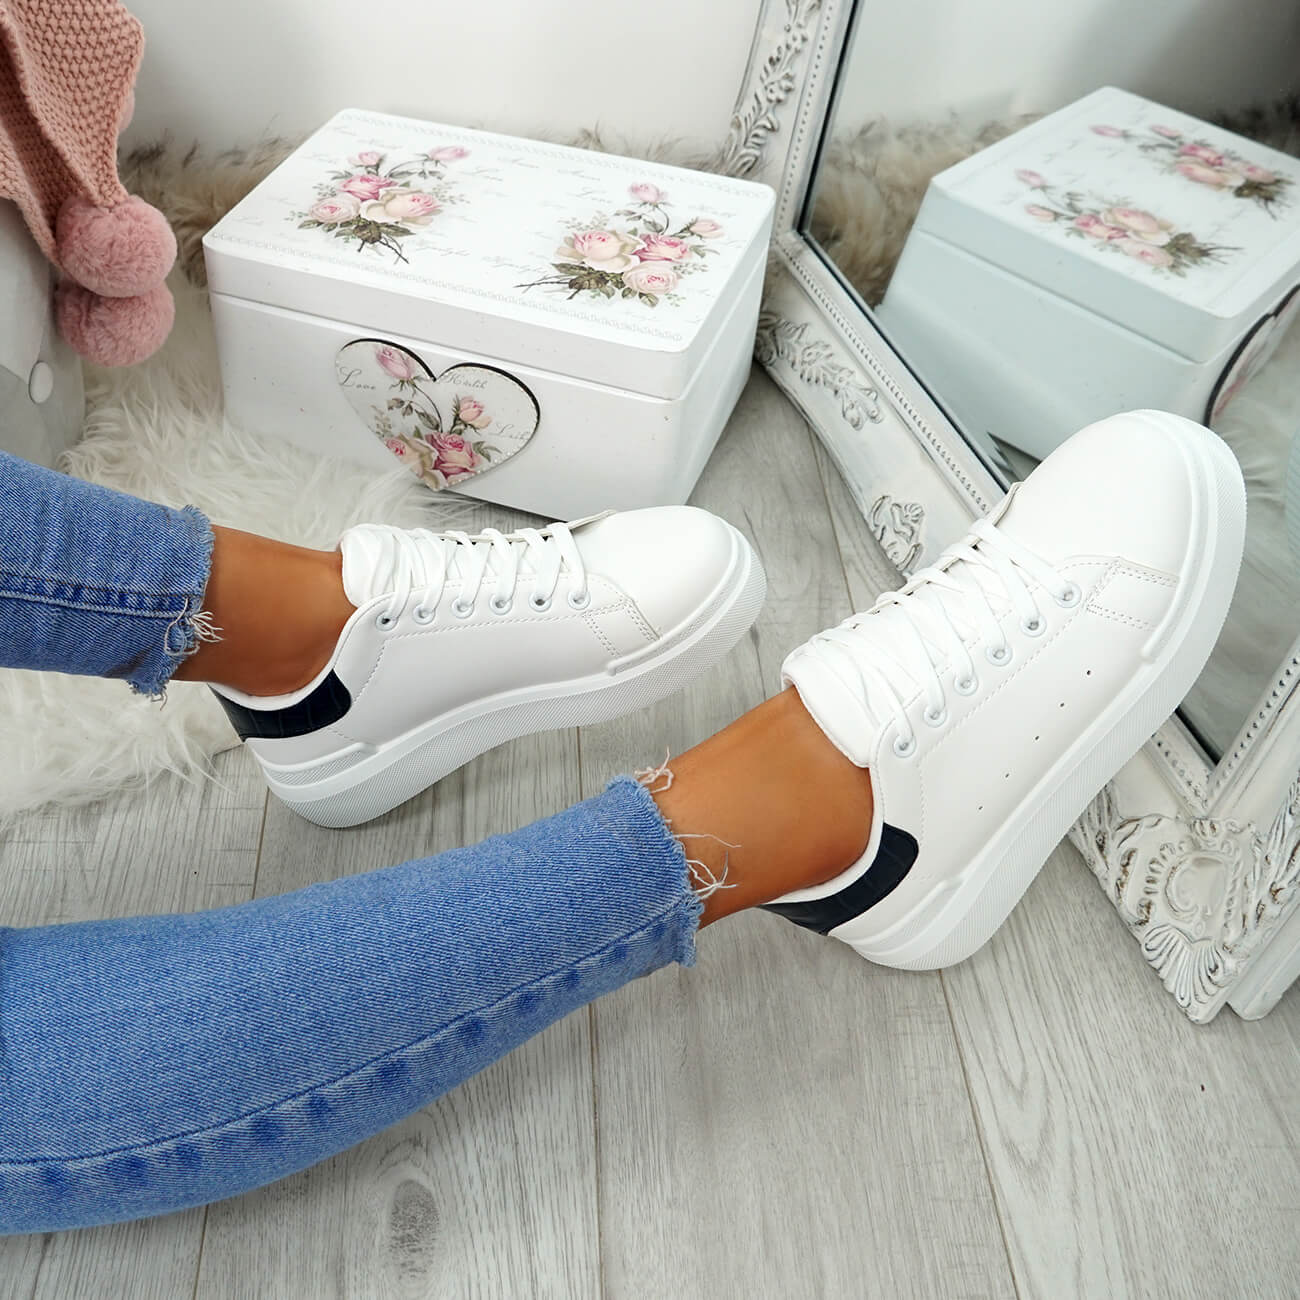 WOMENS-LADIES-LACE-UP-PLIMSOLL-SNEAKERS-CROC-SNAKE-TRAINERS-CASUAL-SHOES-SIZE thumbnail 39